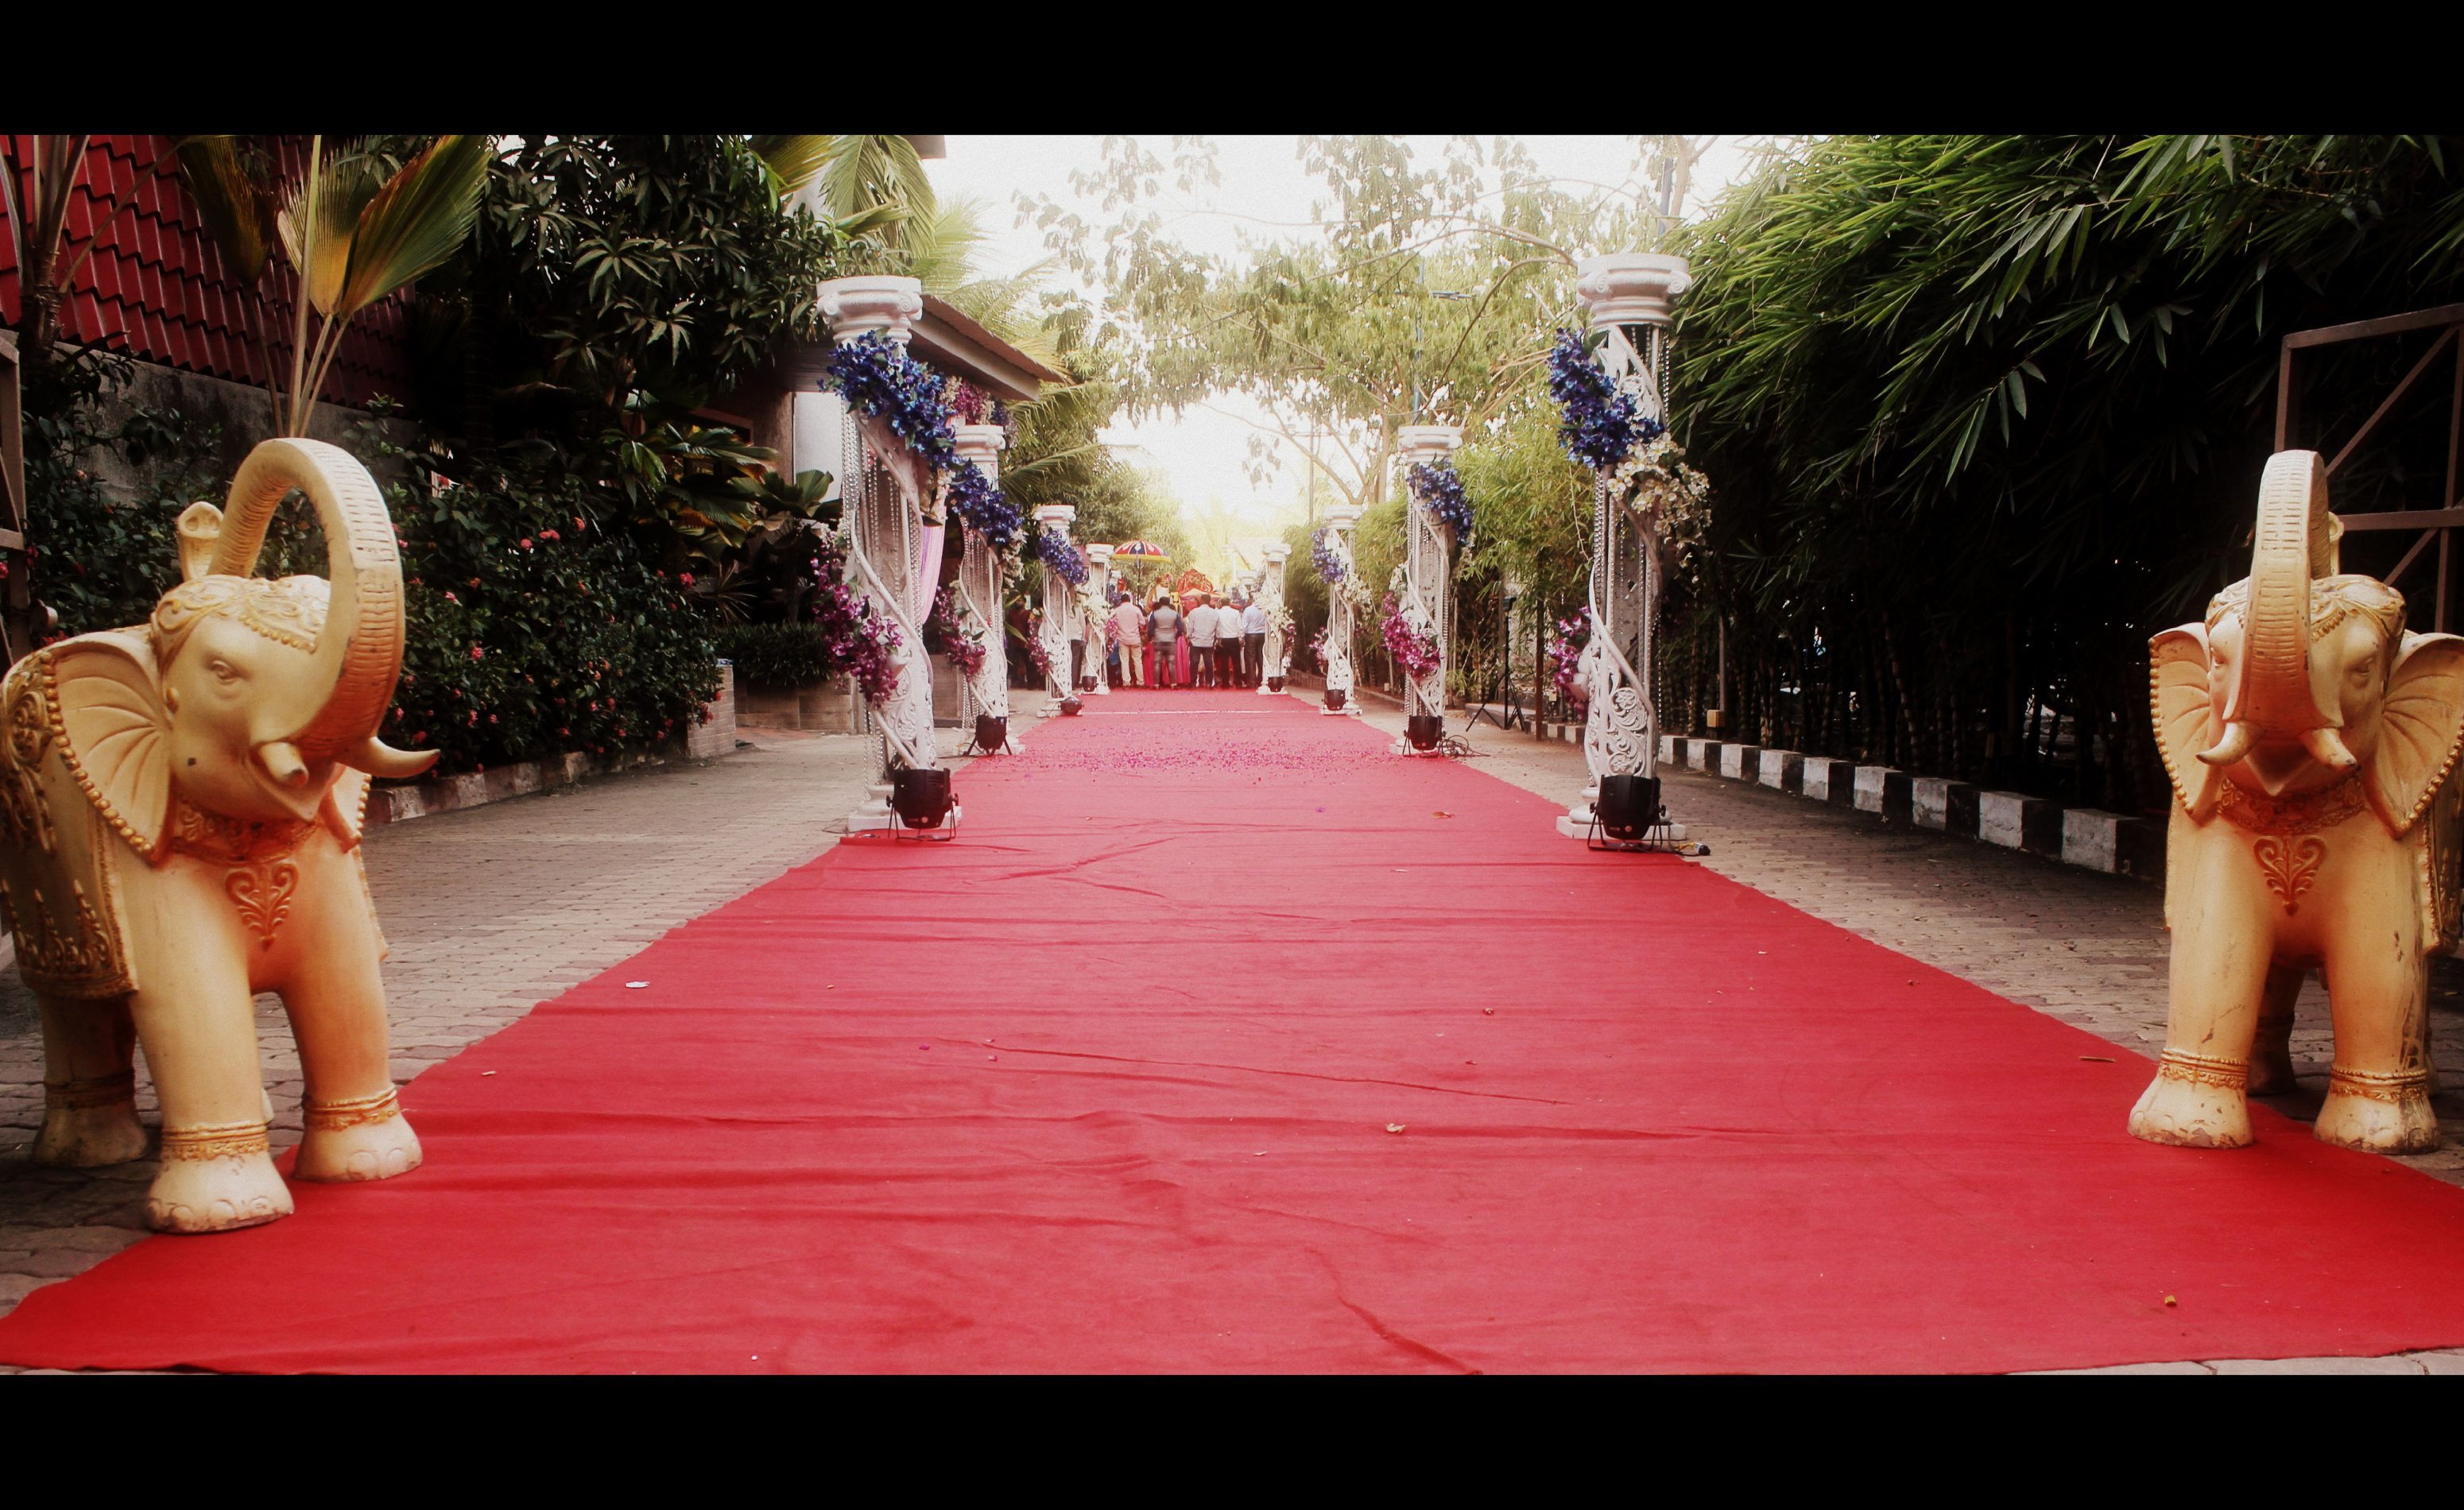 Red carpet entrance of Exotica lawn